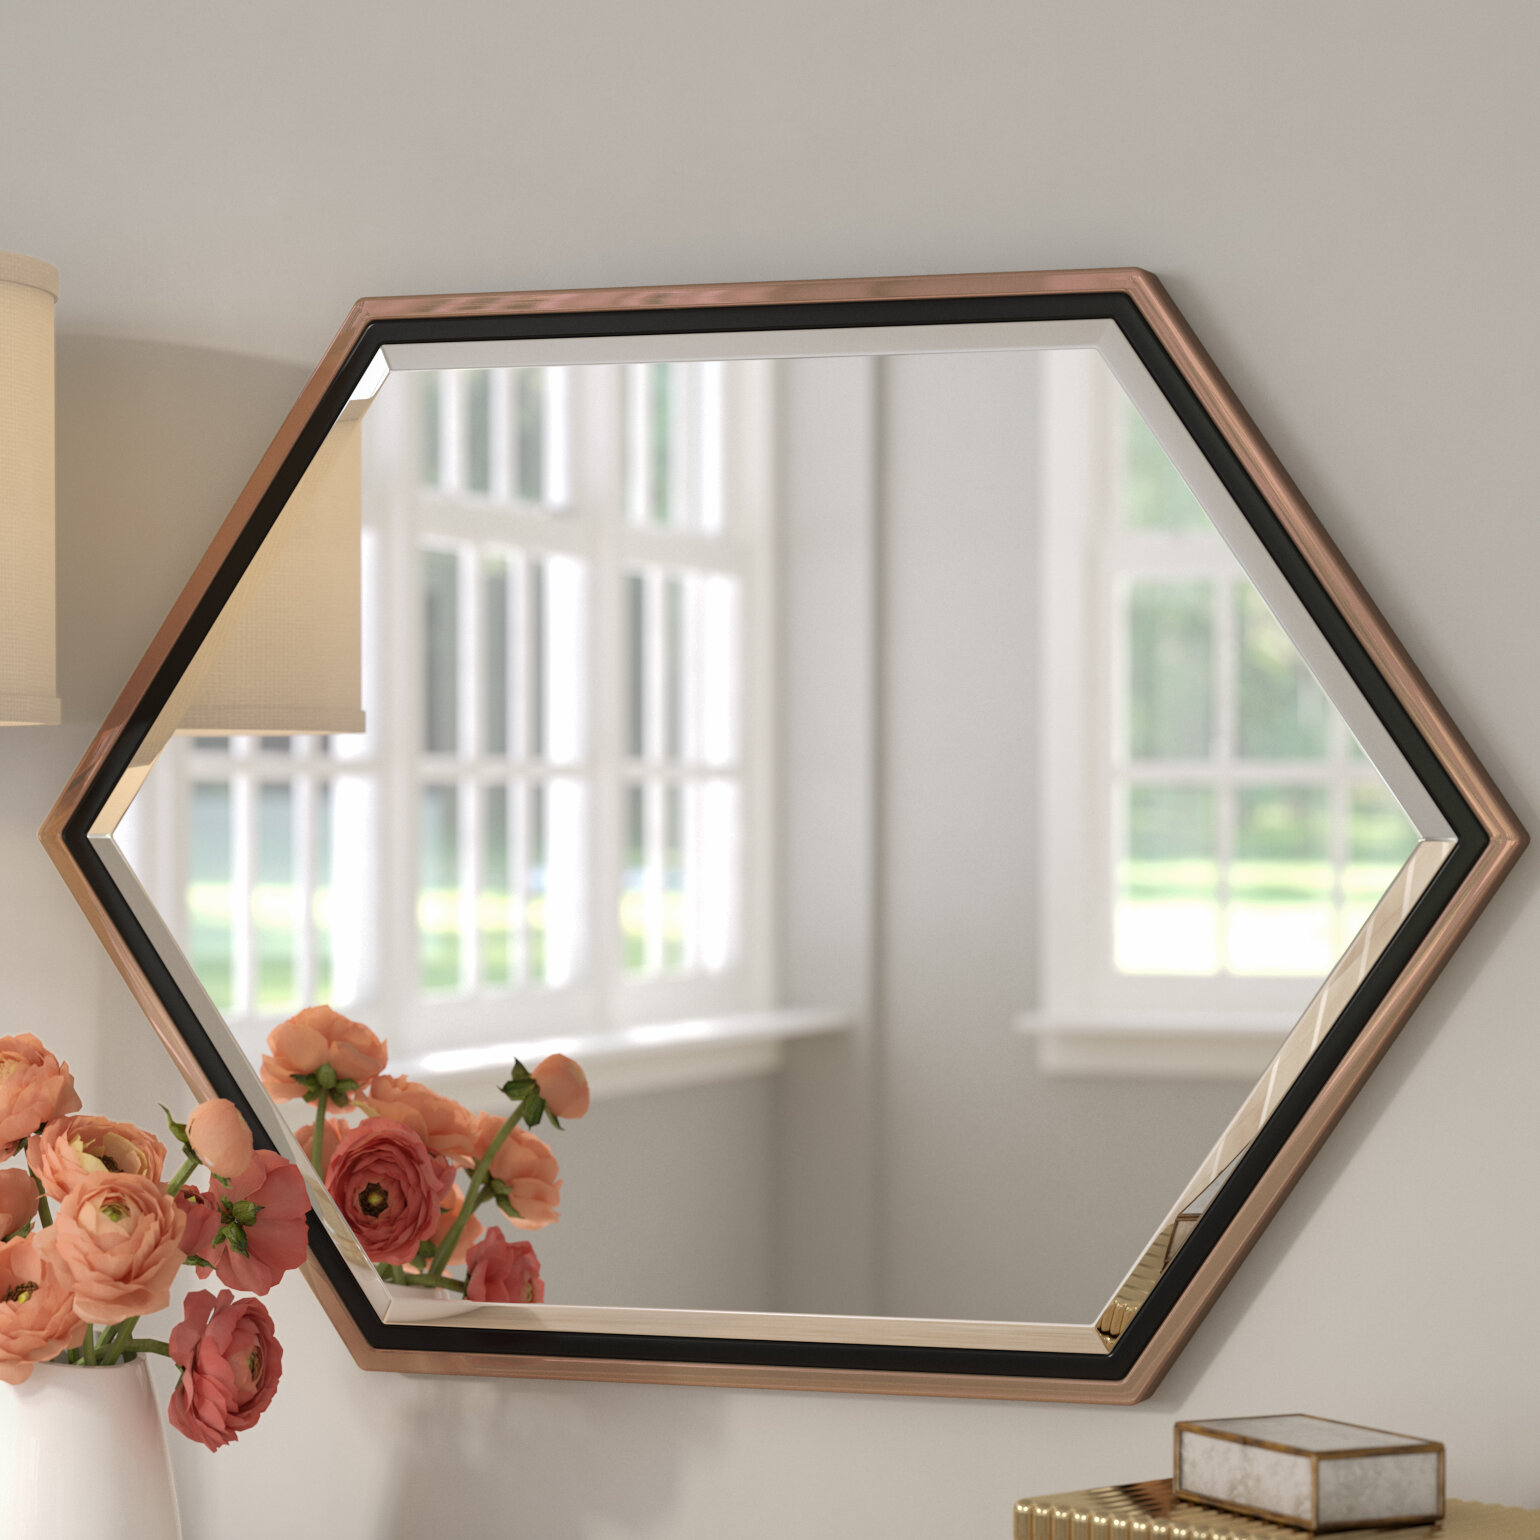 Broadmeadow Accent Wall Mirror | Wayfair For Tellier Accent Wall Mirrors (Image 1 of 20)